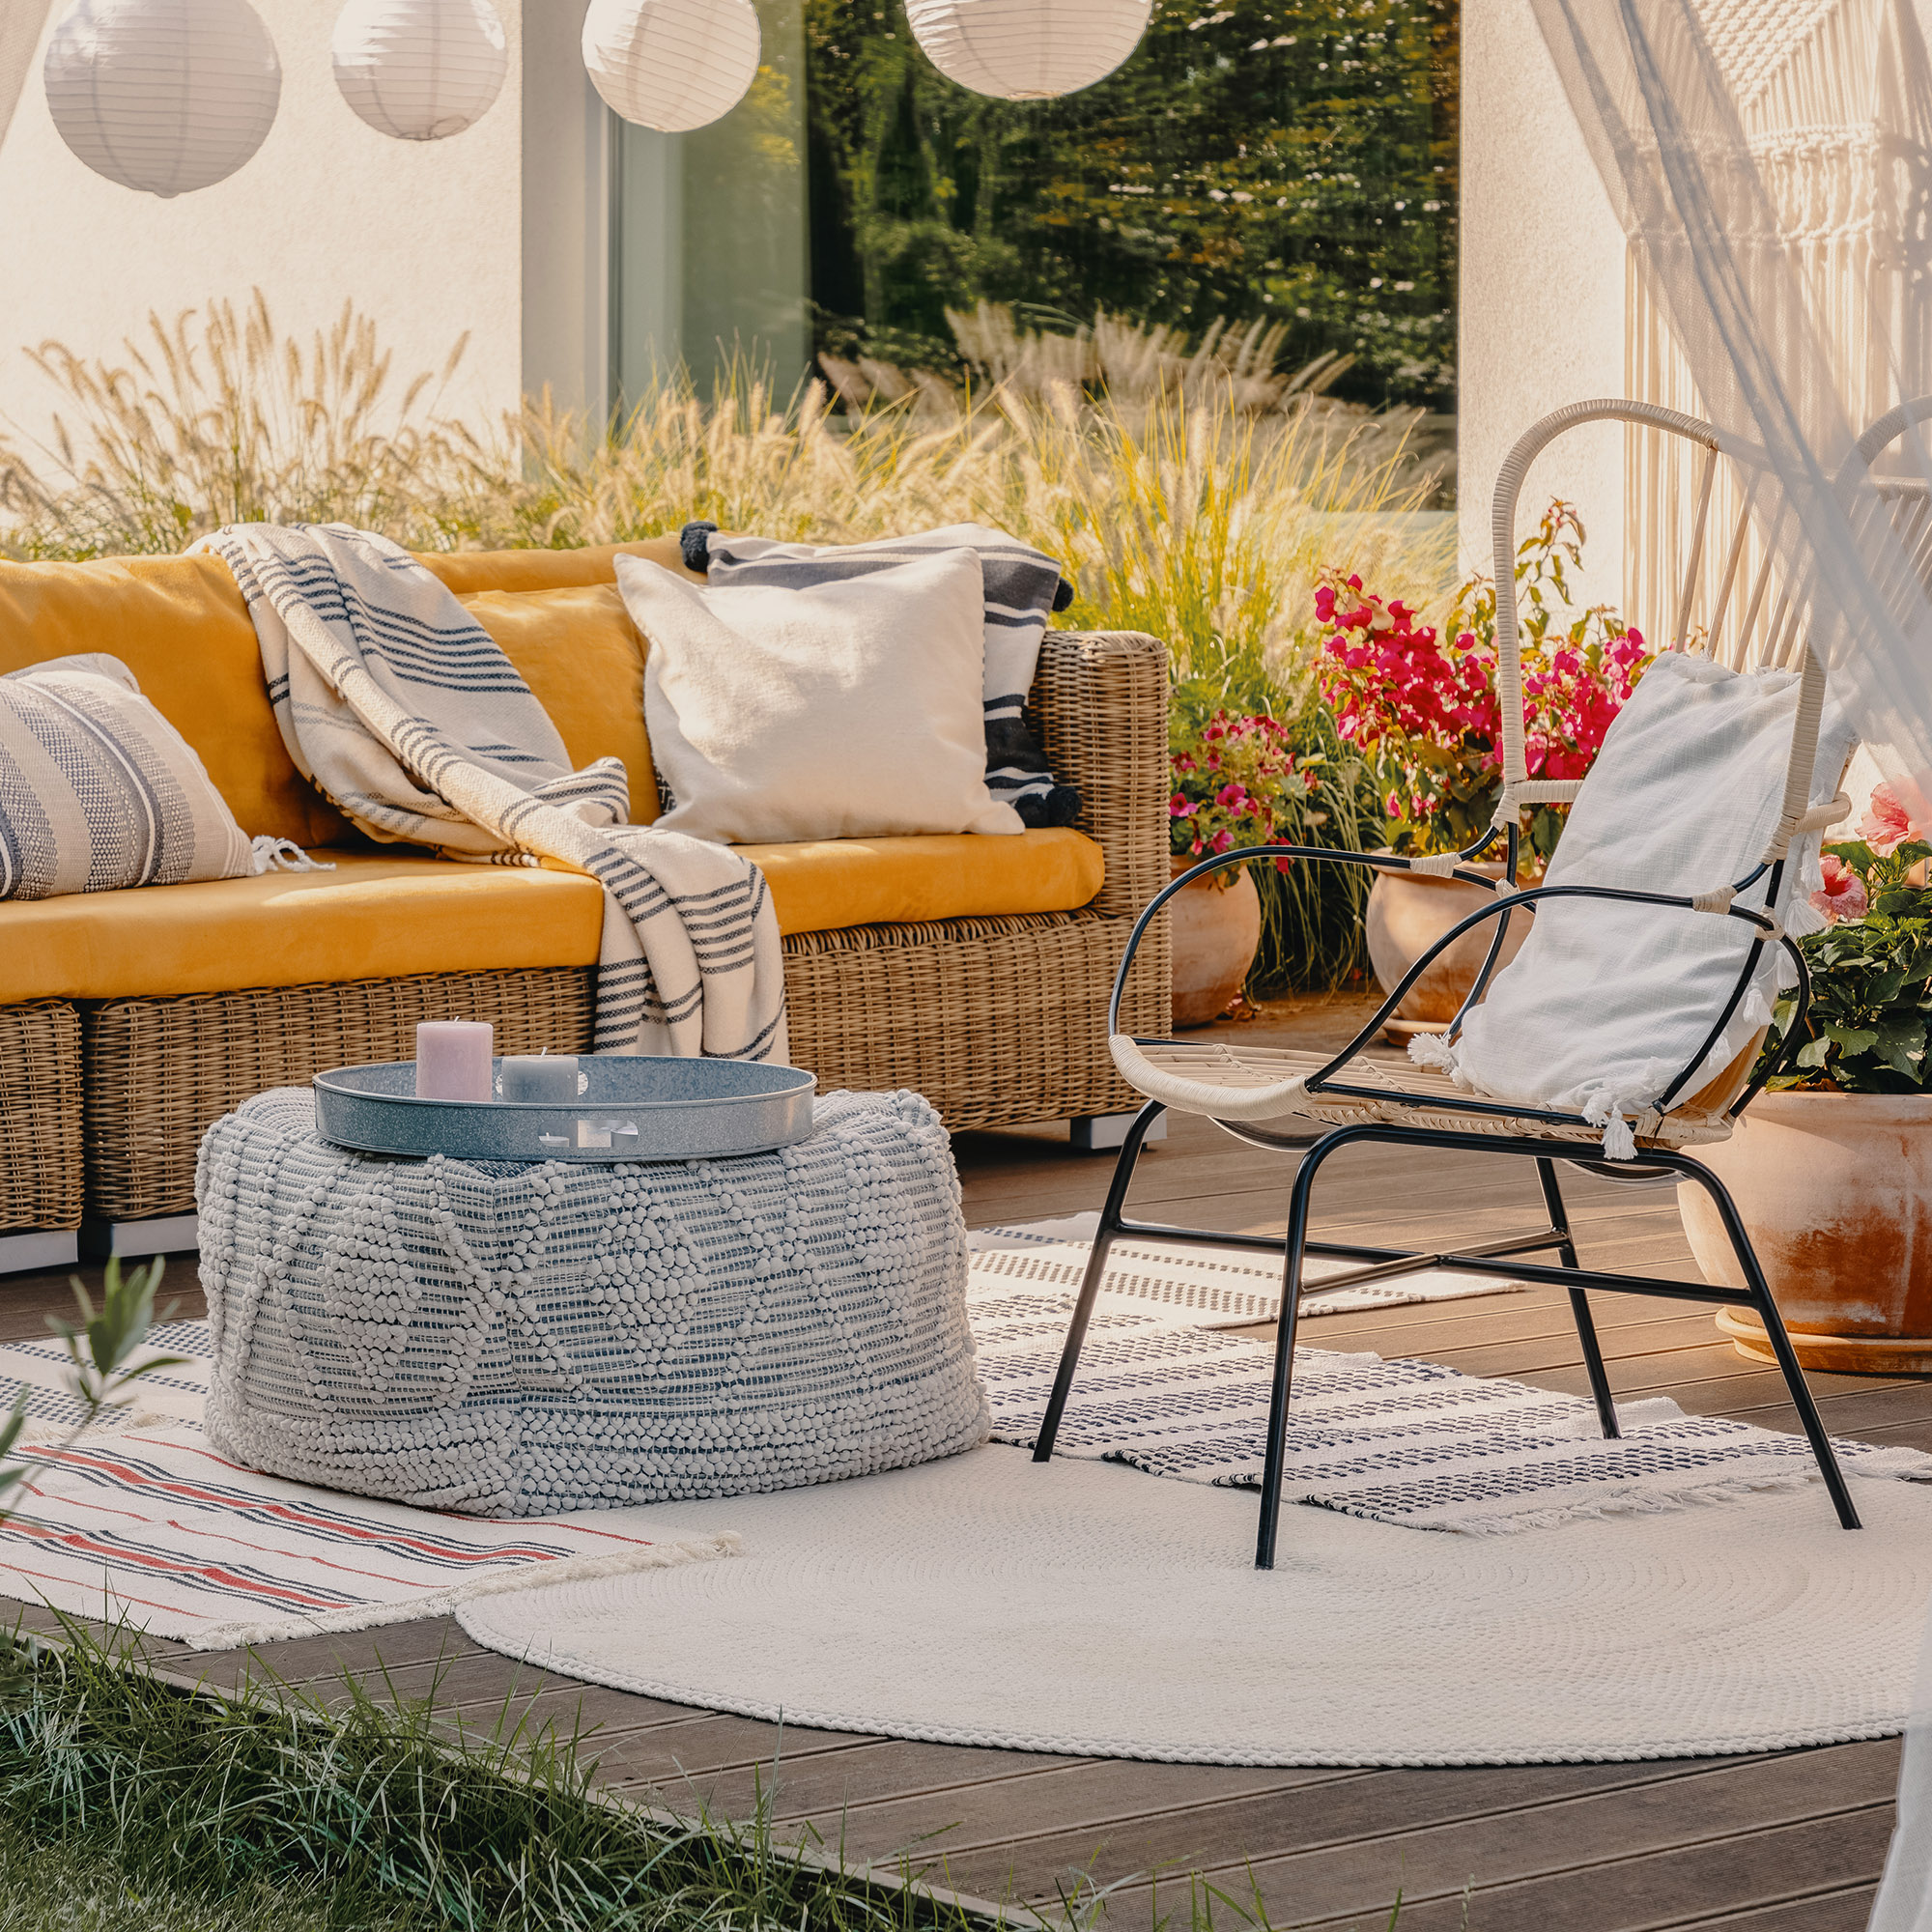 real photo of an armchair, pouf as a table and wicker couch on a